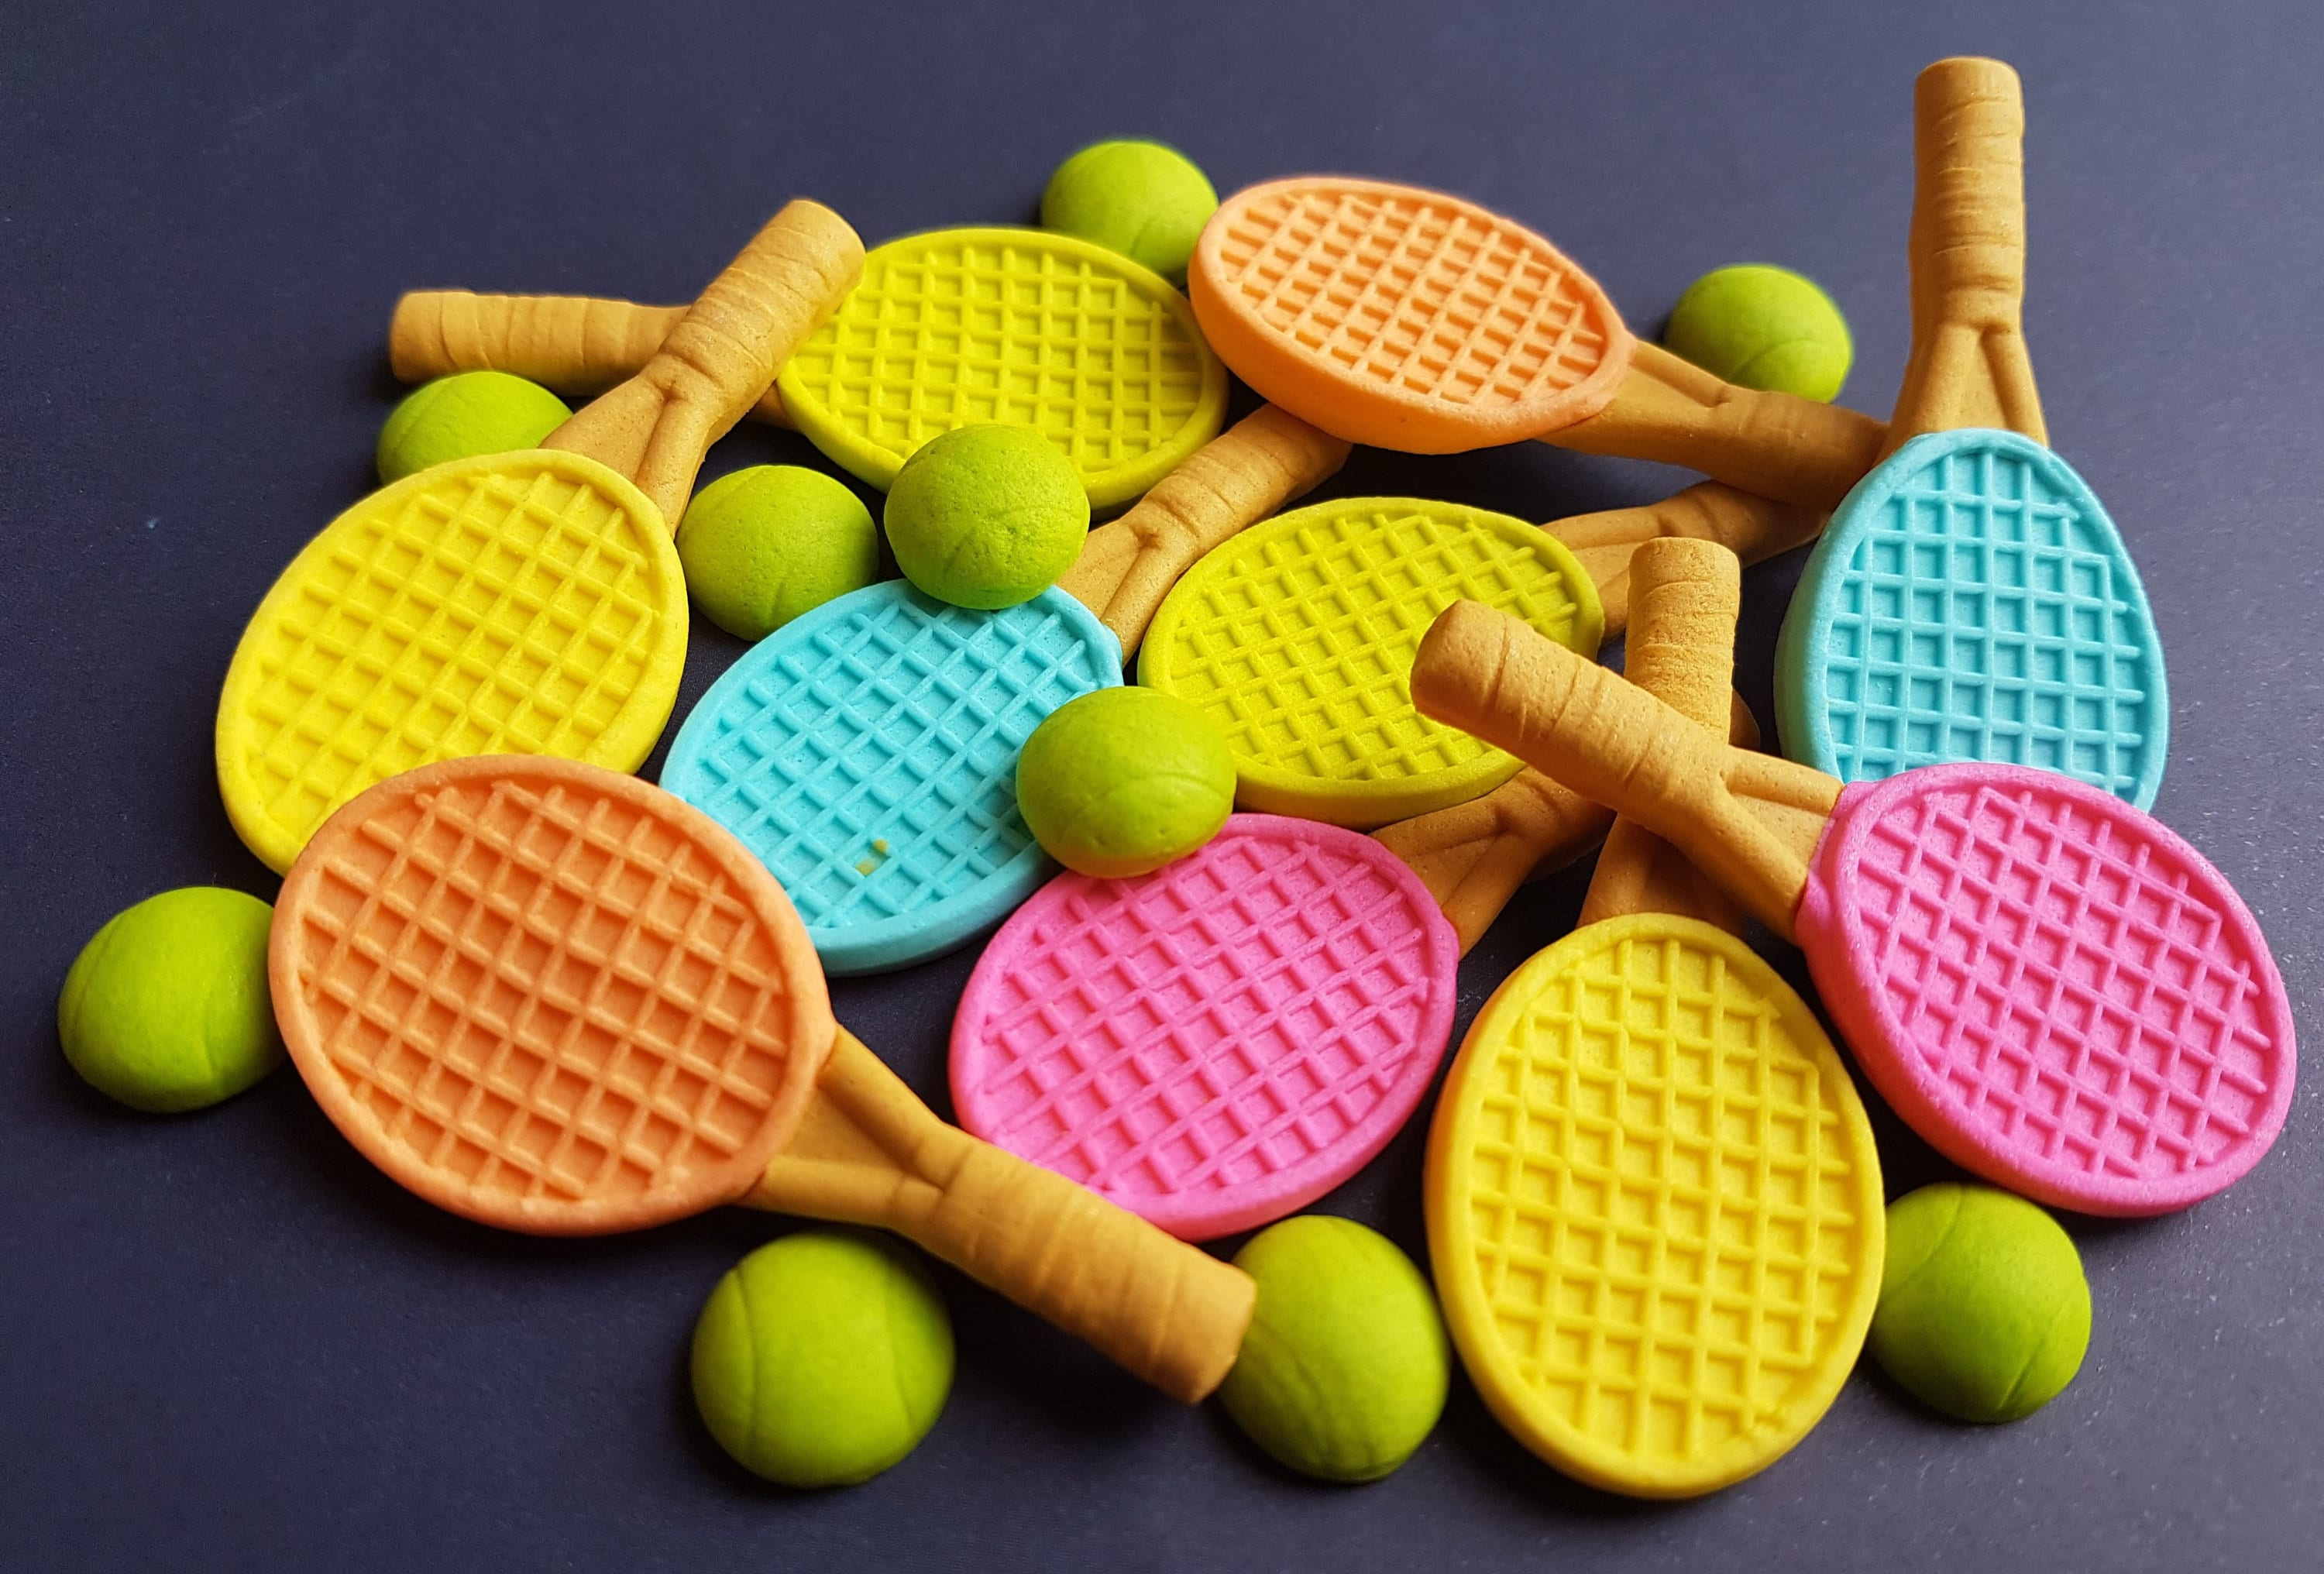 10 Edible Sugar Paste Fondant Rackets 10 Tennis Balls Cake Cupcake